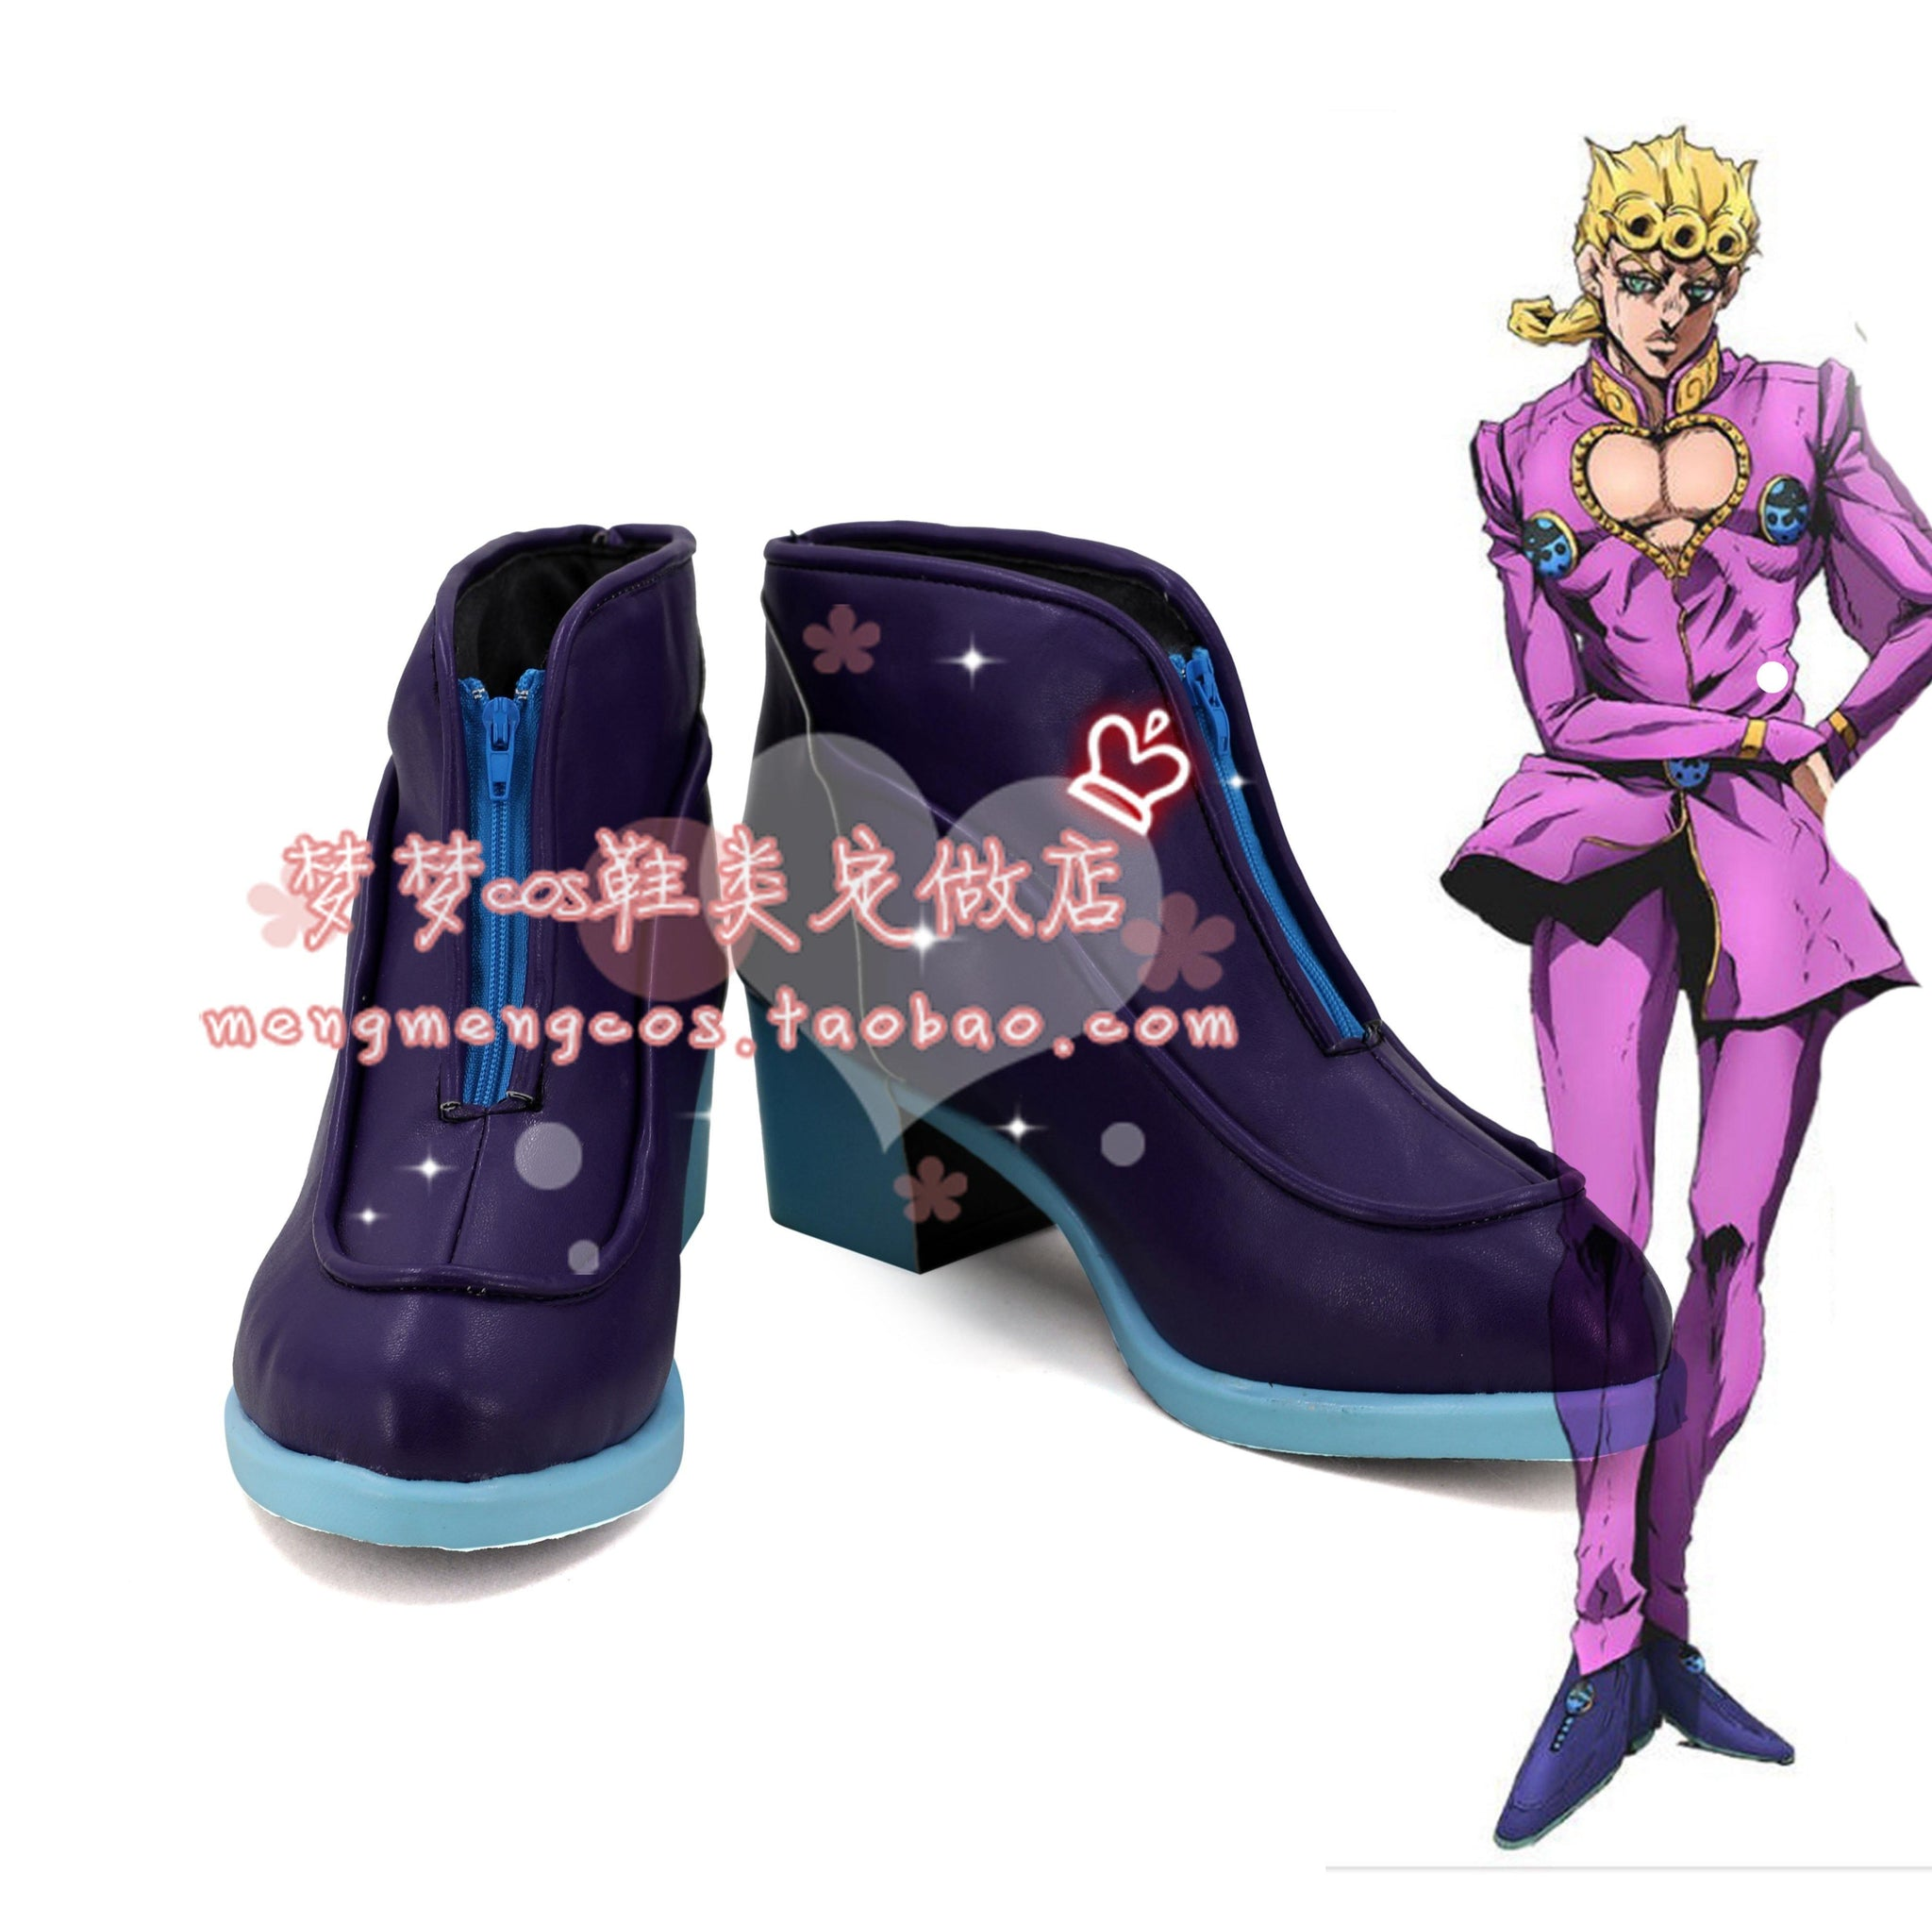 Jotaro Kujo JoJo's Bizarre Adventure: Golden Wind Giorno Giovanna Schuhe Cosplay Schuhe Version B Lila